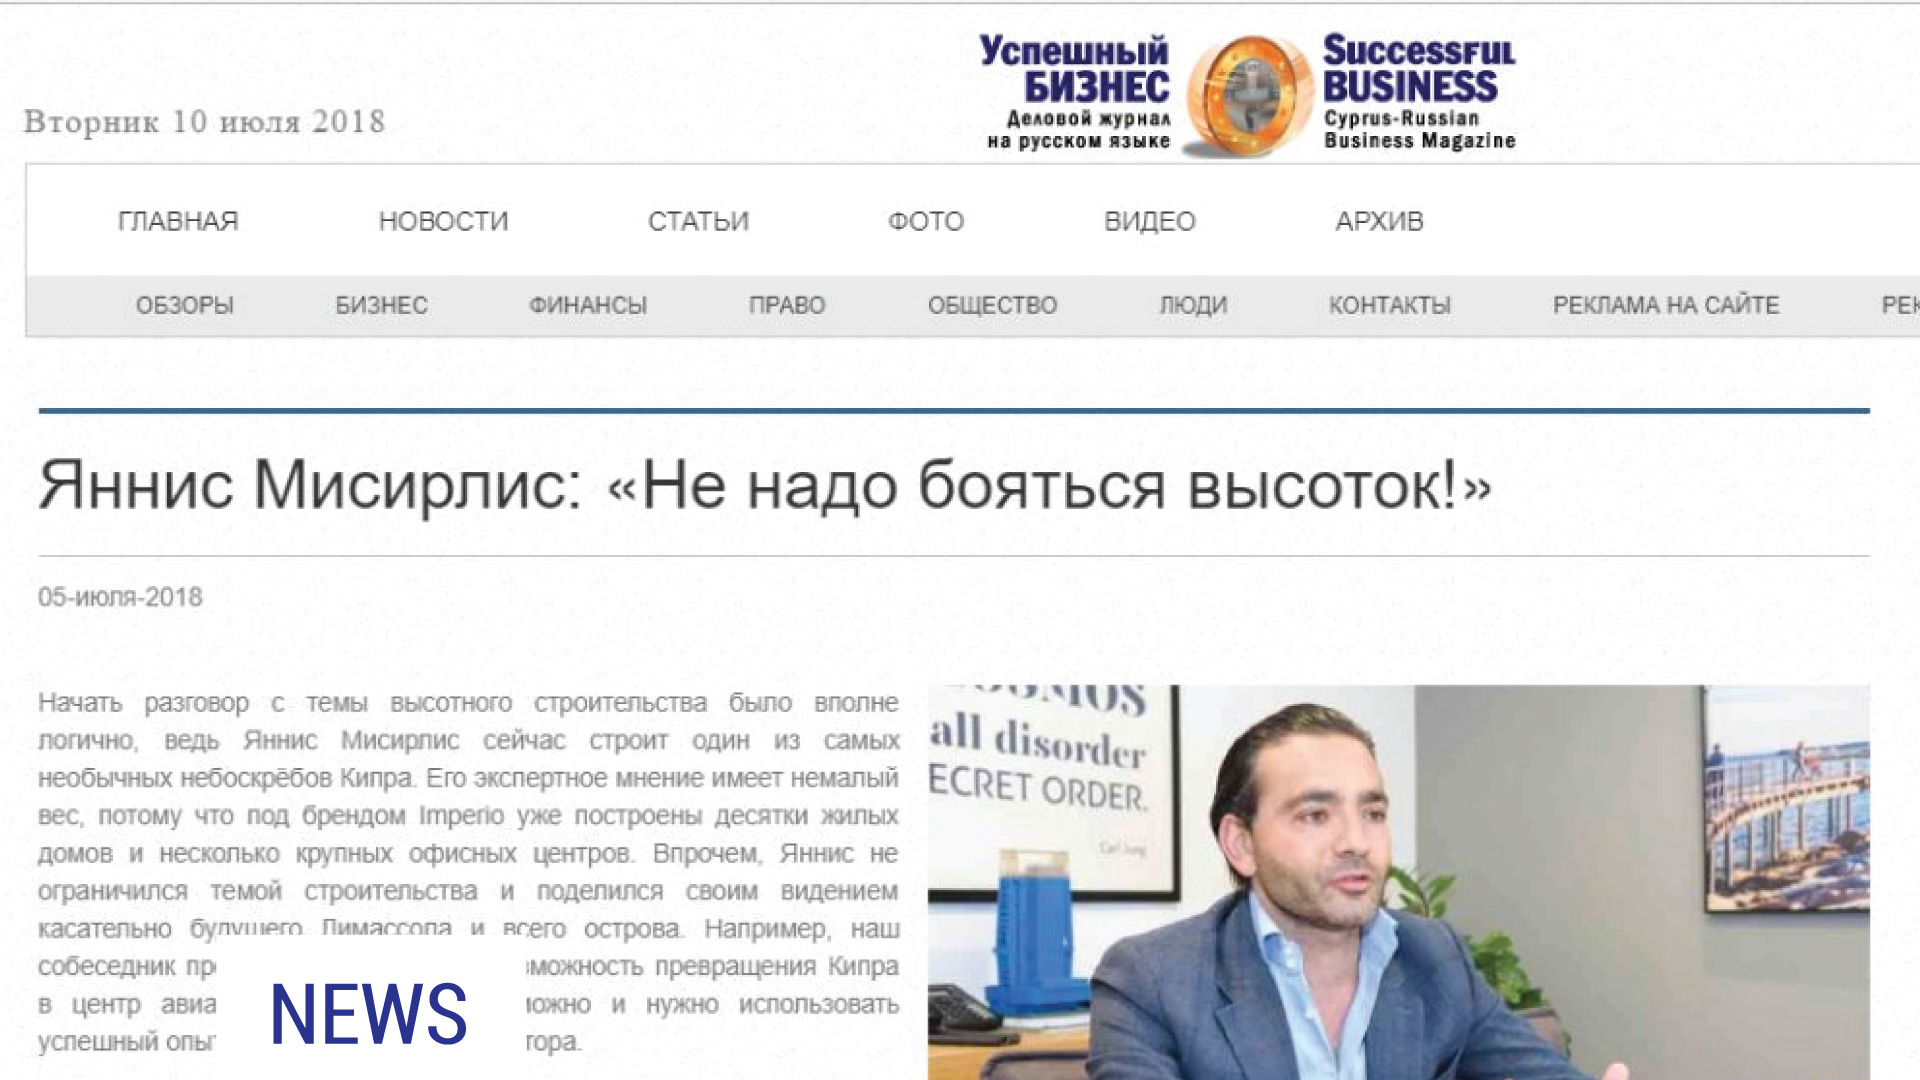 Cyprus Russian Business: «Don't be afraid of high-rises»